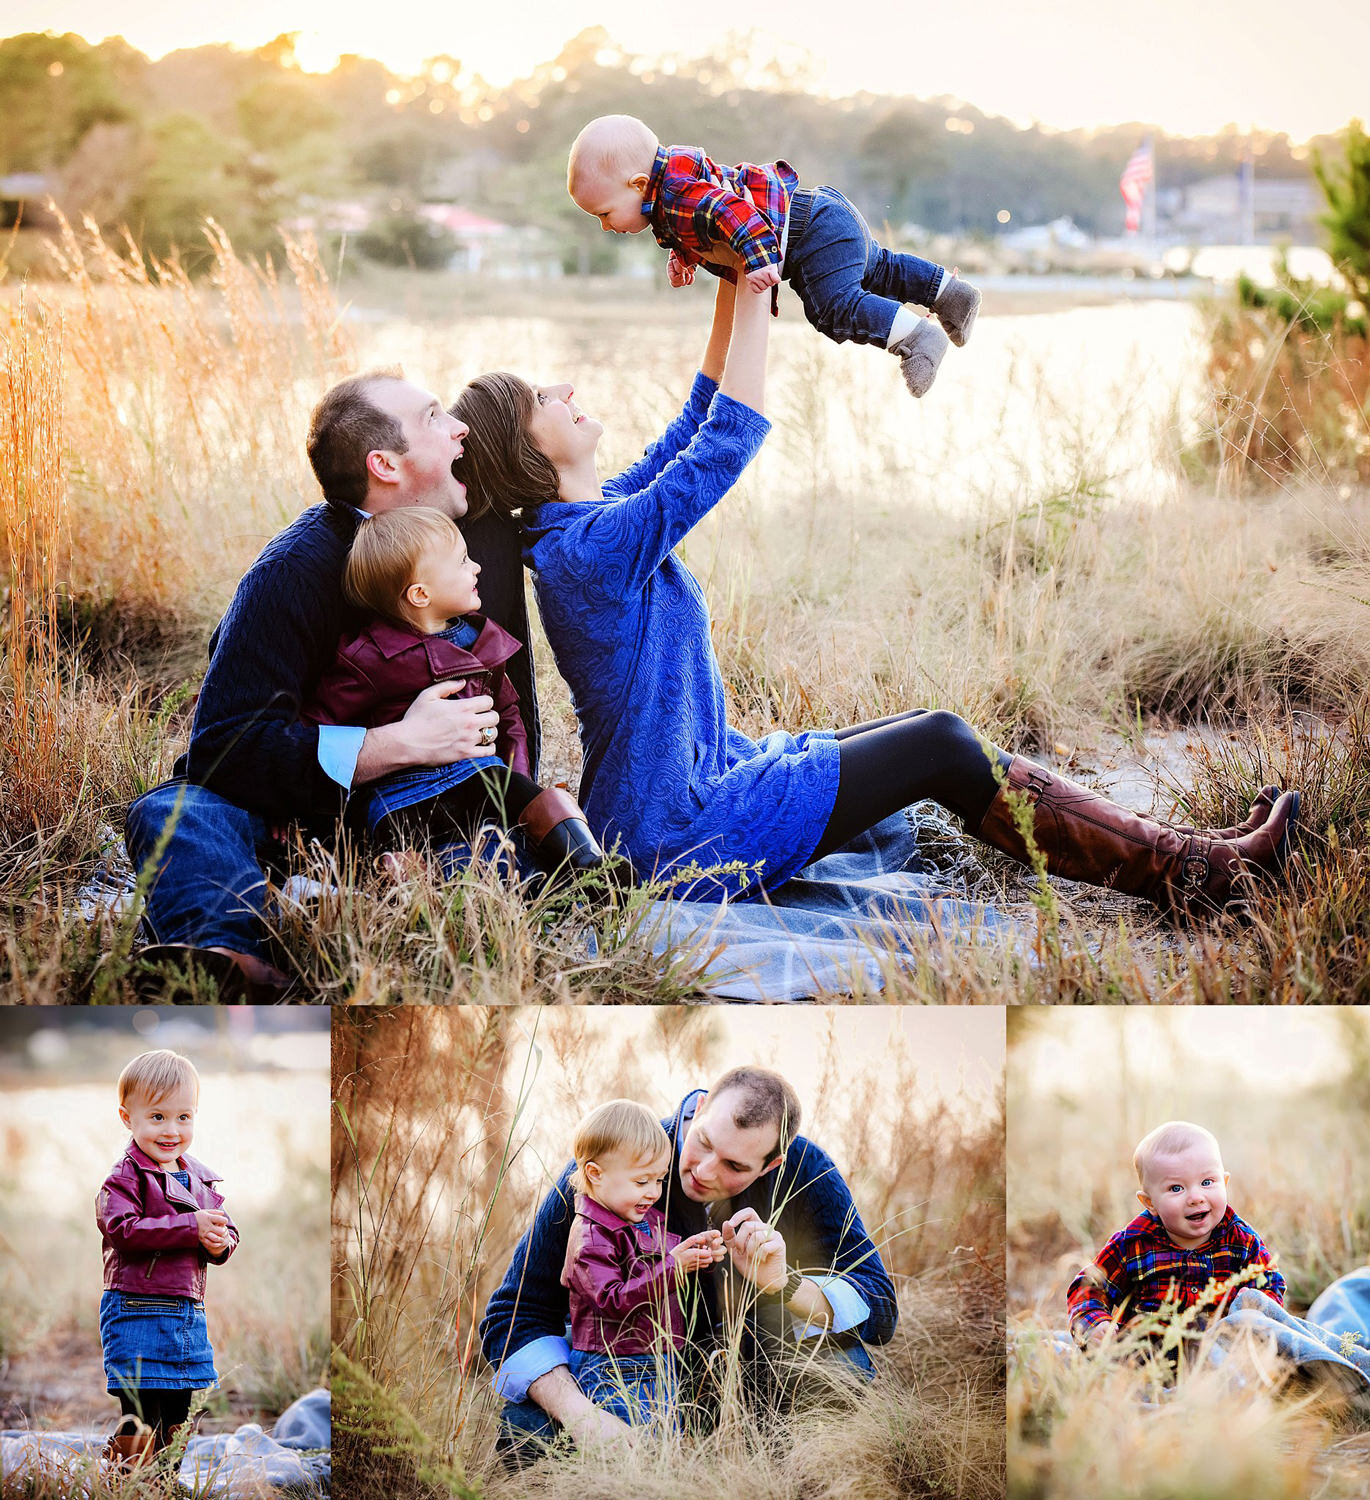 fall-family-photos-virginia-beach-melissa-bliss-photography.jpg